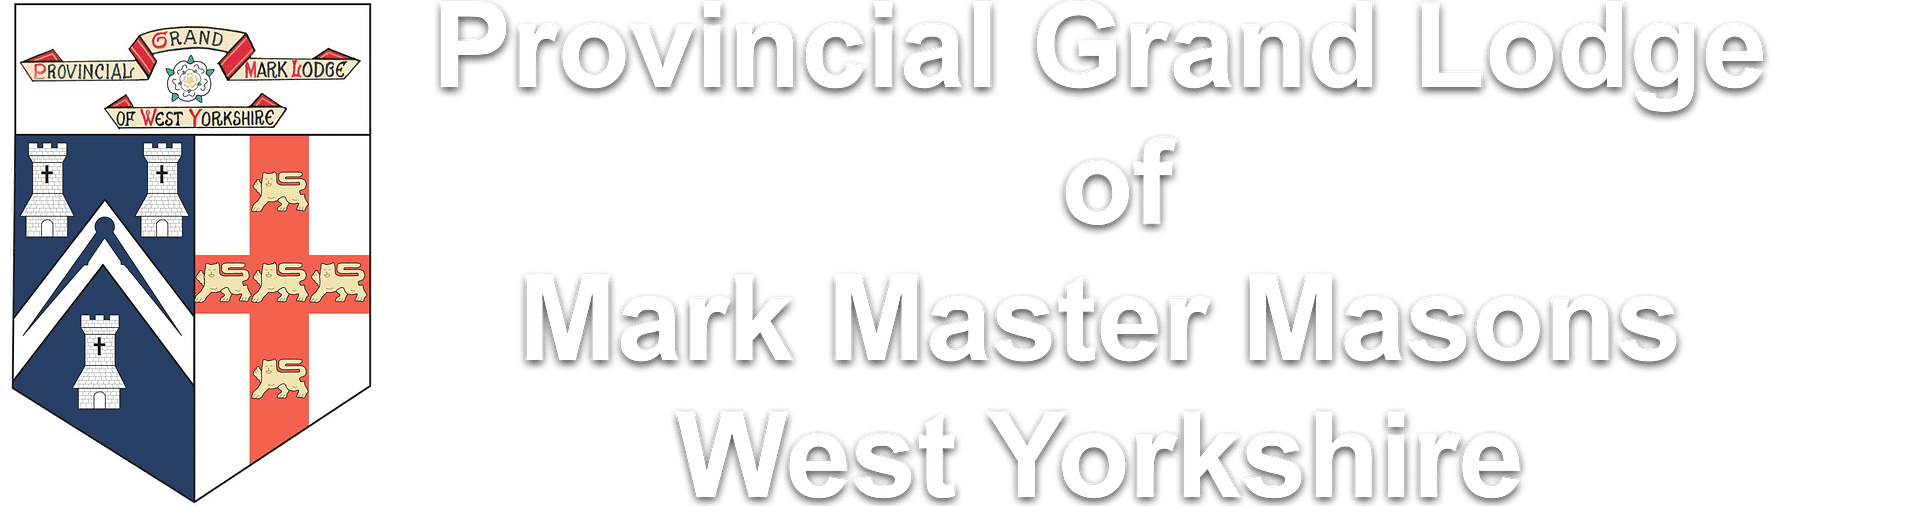 Provincial Grand Lodge of Mark Master Masons West Yorkshire